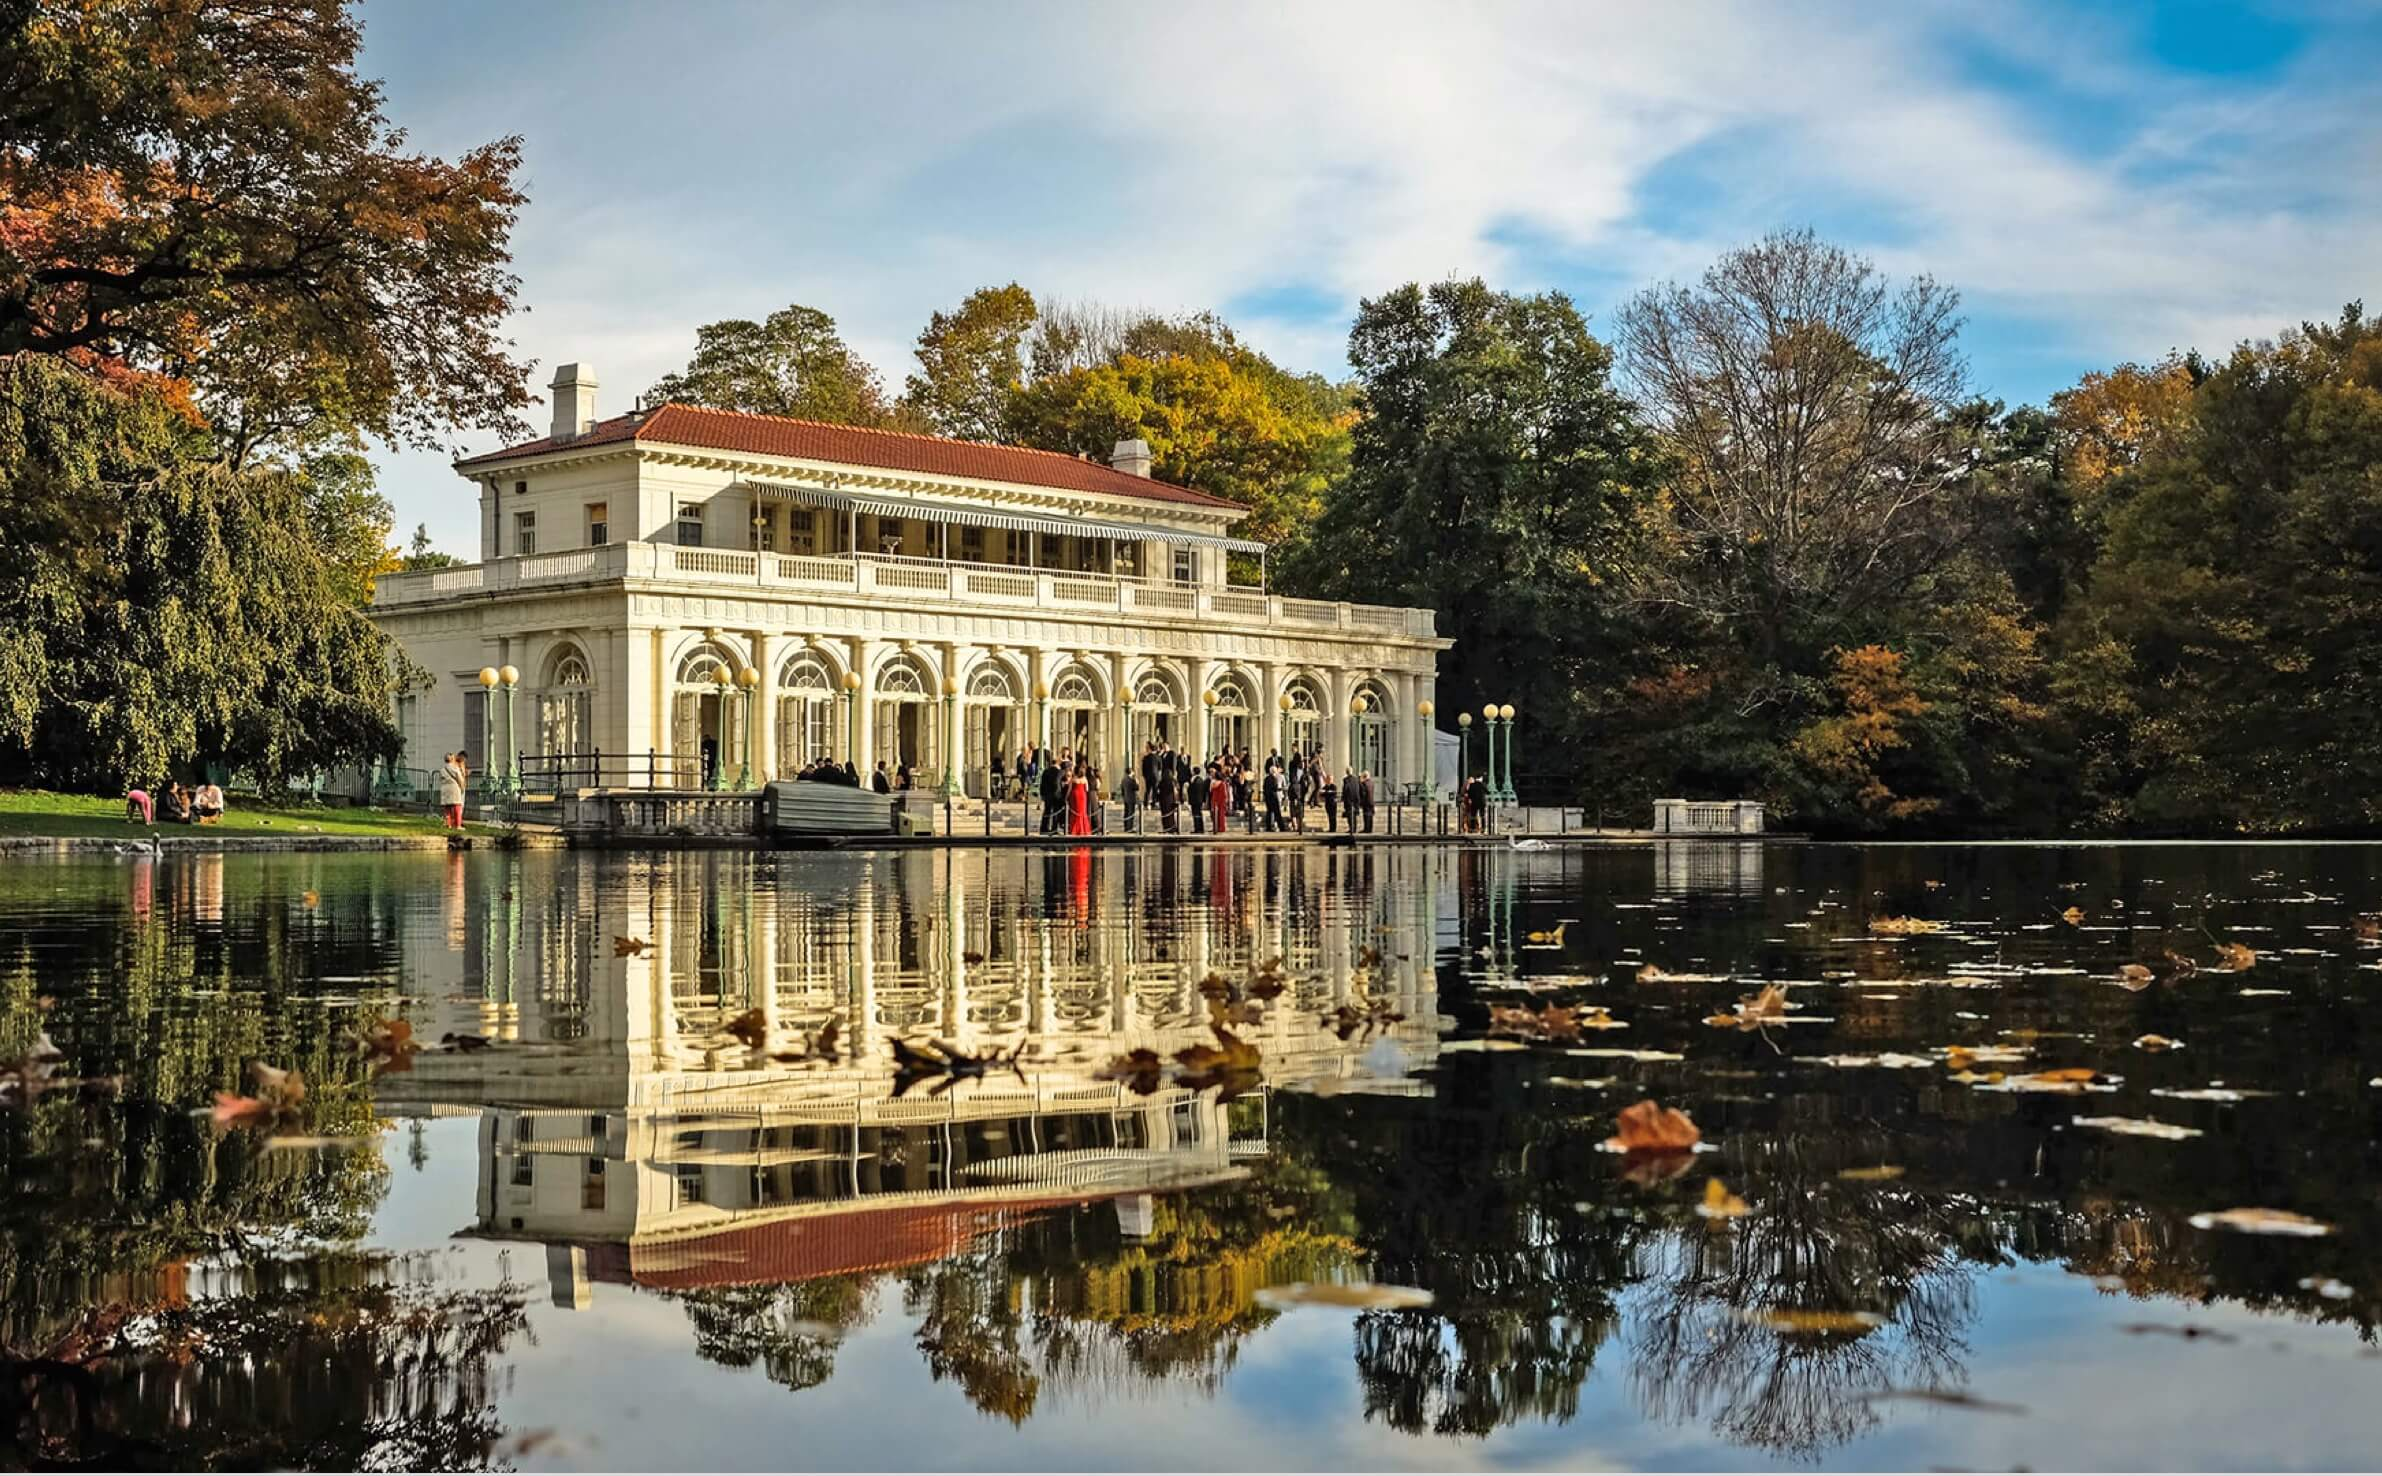 Boathouse and lake at Prospect Park